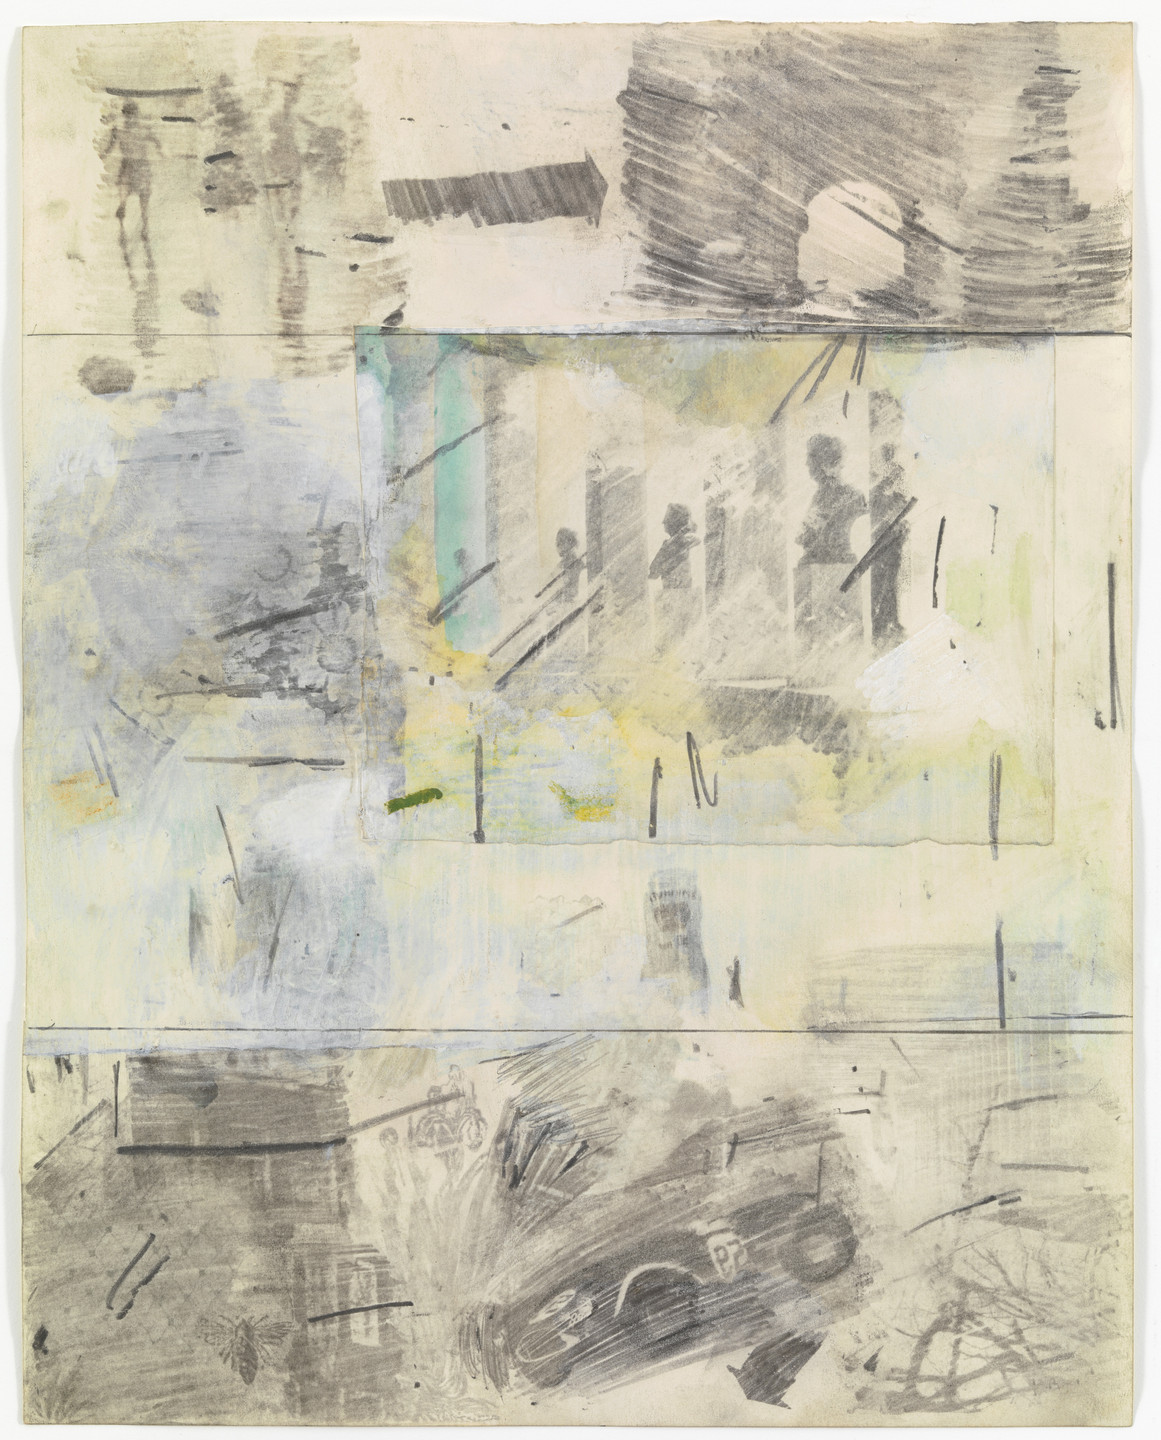 Robert Rauschenberg. Canto IV: Limbo, Circle One, The Virtuous Pagans from the series Thirty-Four Illustrations for Dante's Inferno. (1958)